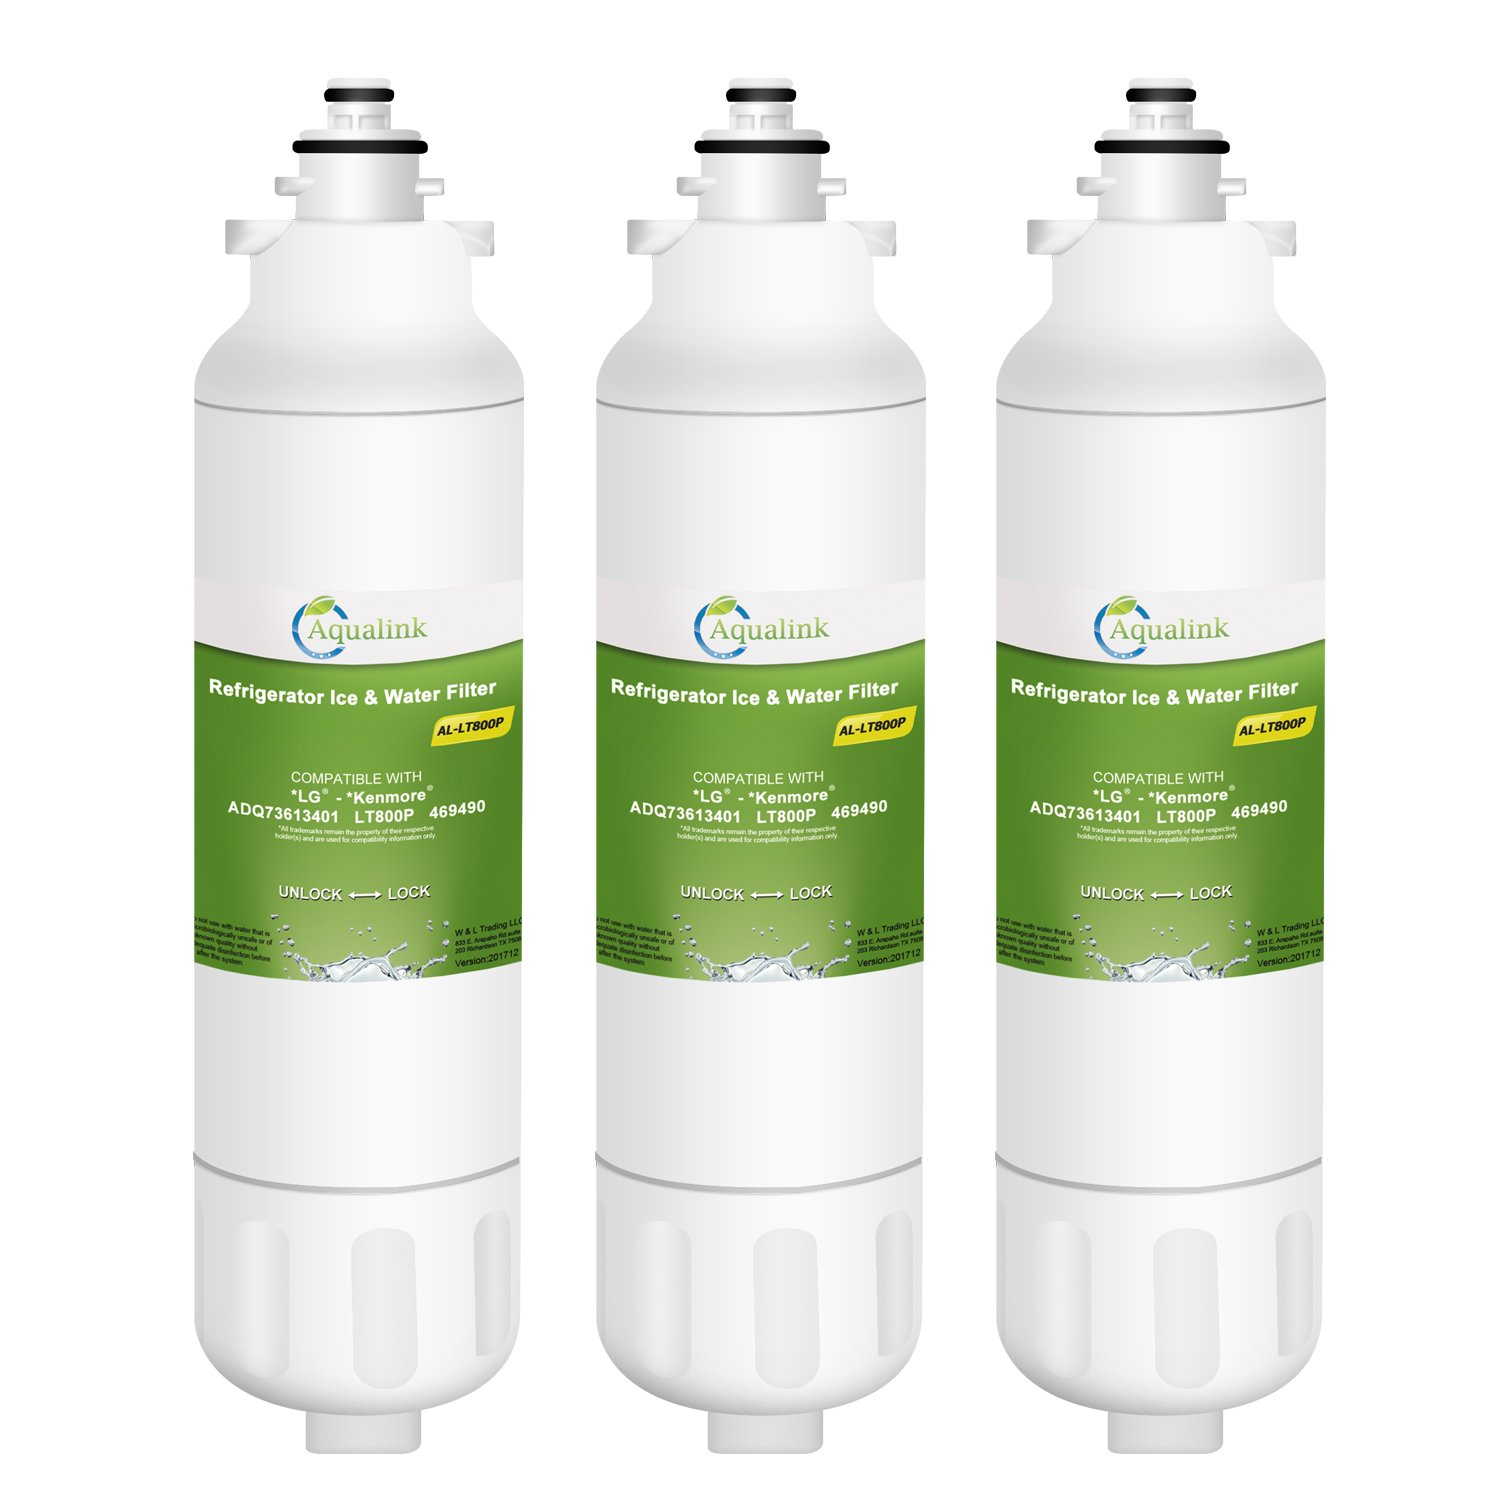 AQUALINK LT800P Refrigerator Water Filter Replacement for LG LT800P,ADQ73613401,ADQ73613402,LT800PC,Kenmore 9490 3 Pack